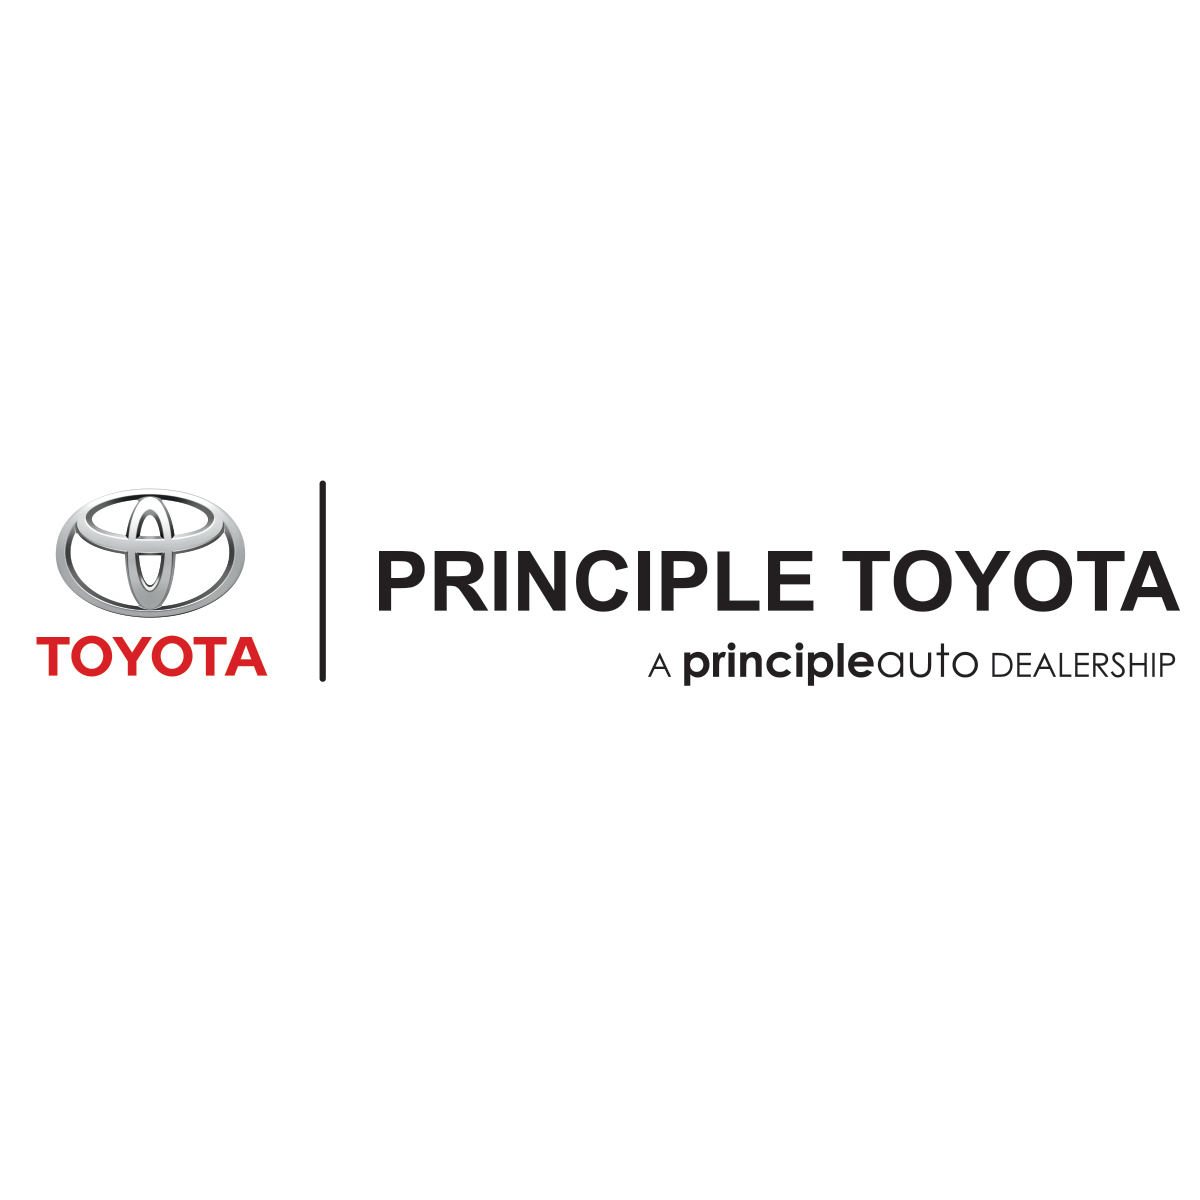 Principle Toyota Coupons near me in Memphis | 8coupons